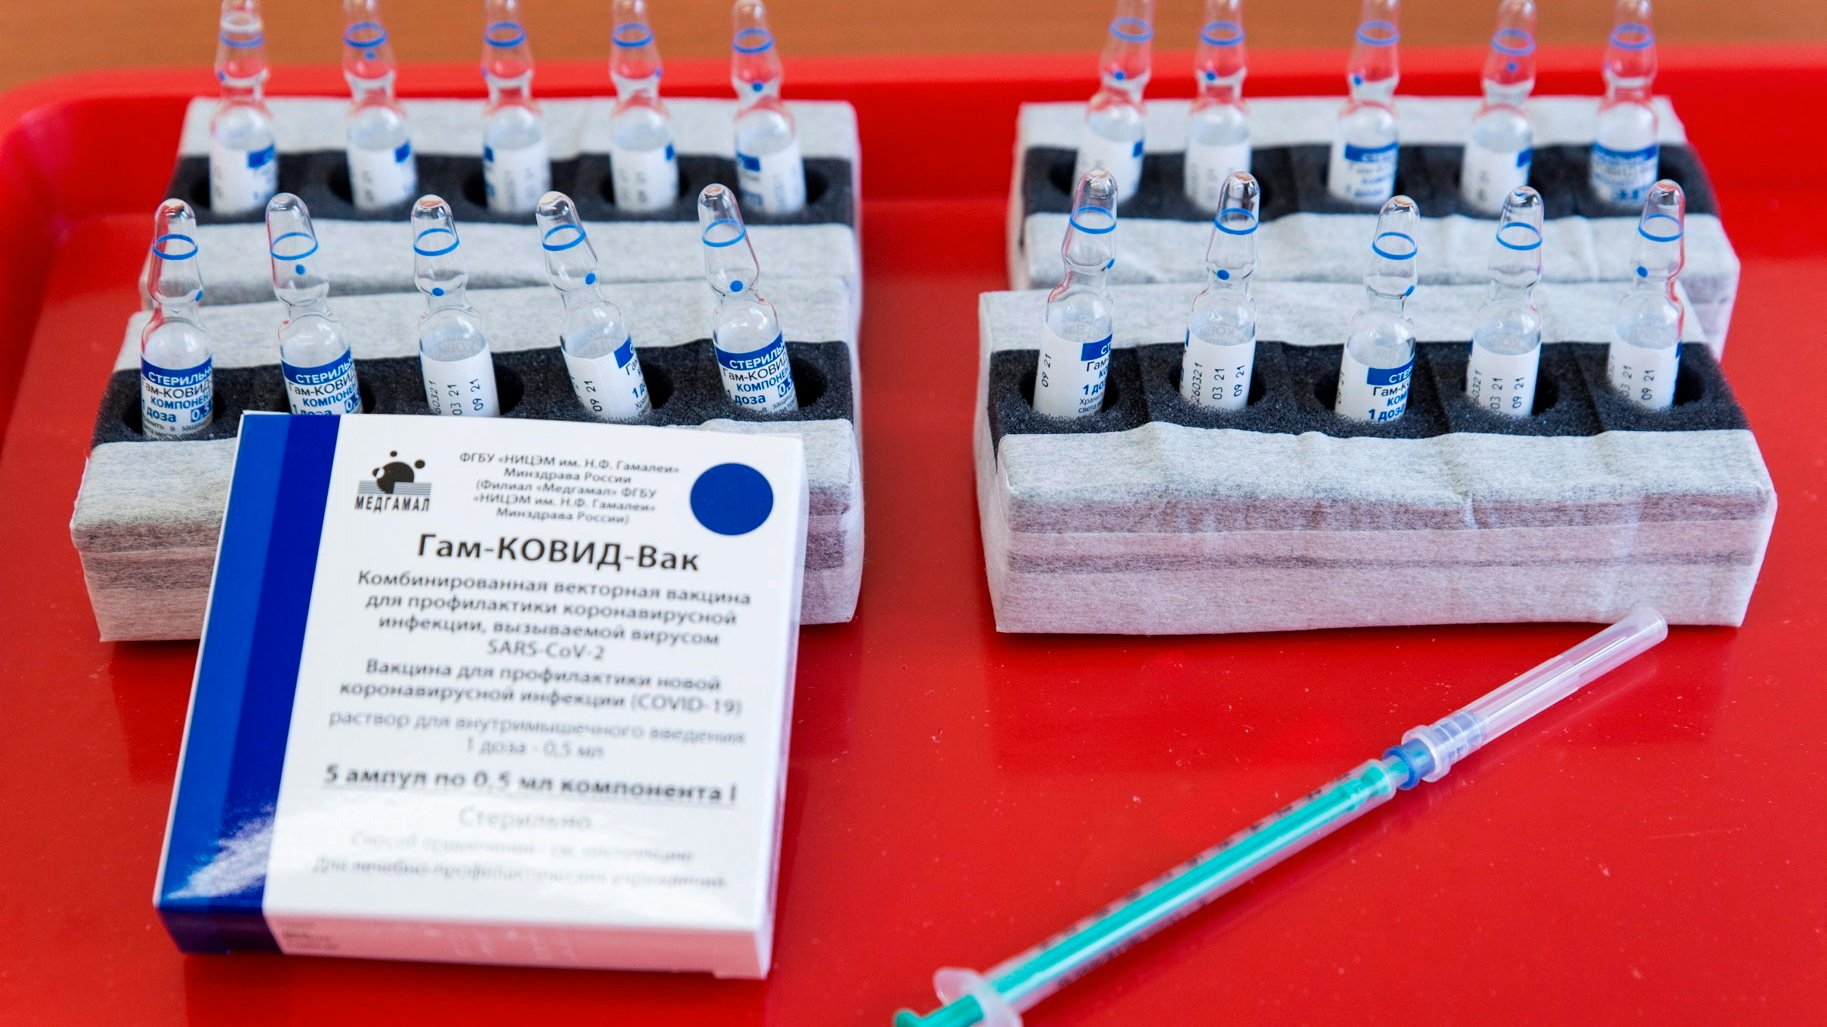 epa09142995 Vials of the Russian Sputnik V vaccine against COVID-19 are prepared to be inoculated to patients in the Petz Aladar Teaching Hospital in Gyor, Hungary, 18 April 2021, as the vaccination drive continues in the country.  EPA/Csaba Krizsan HUNGARY OUT